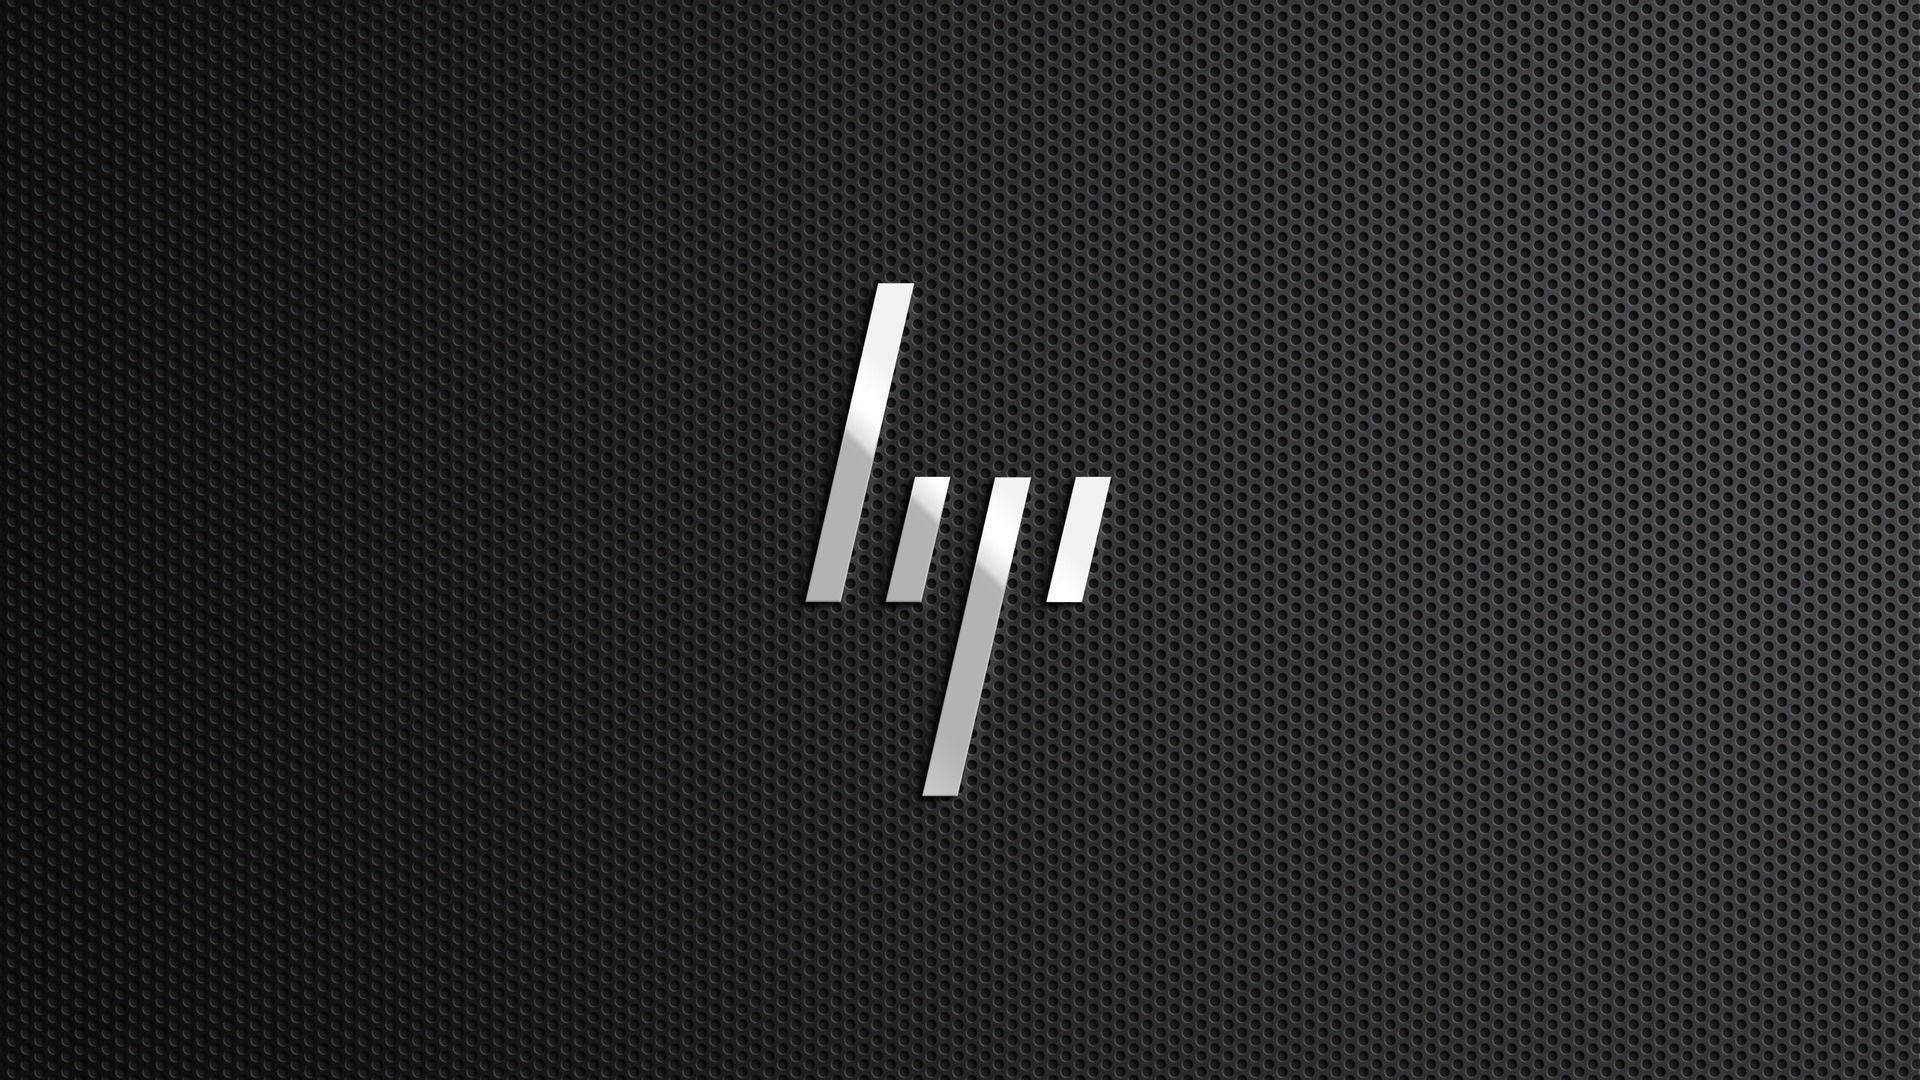 Cool HP Wallpapers   Top Free Cool HP Backgrounds   WallpaperAccess